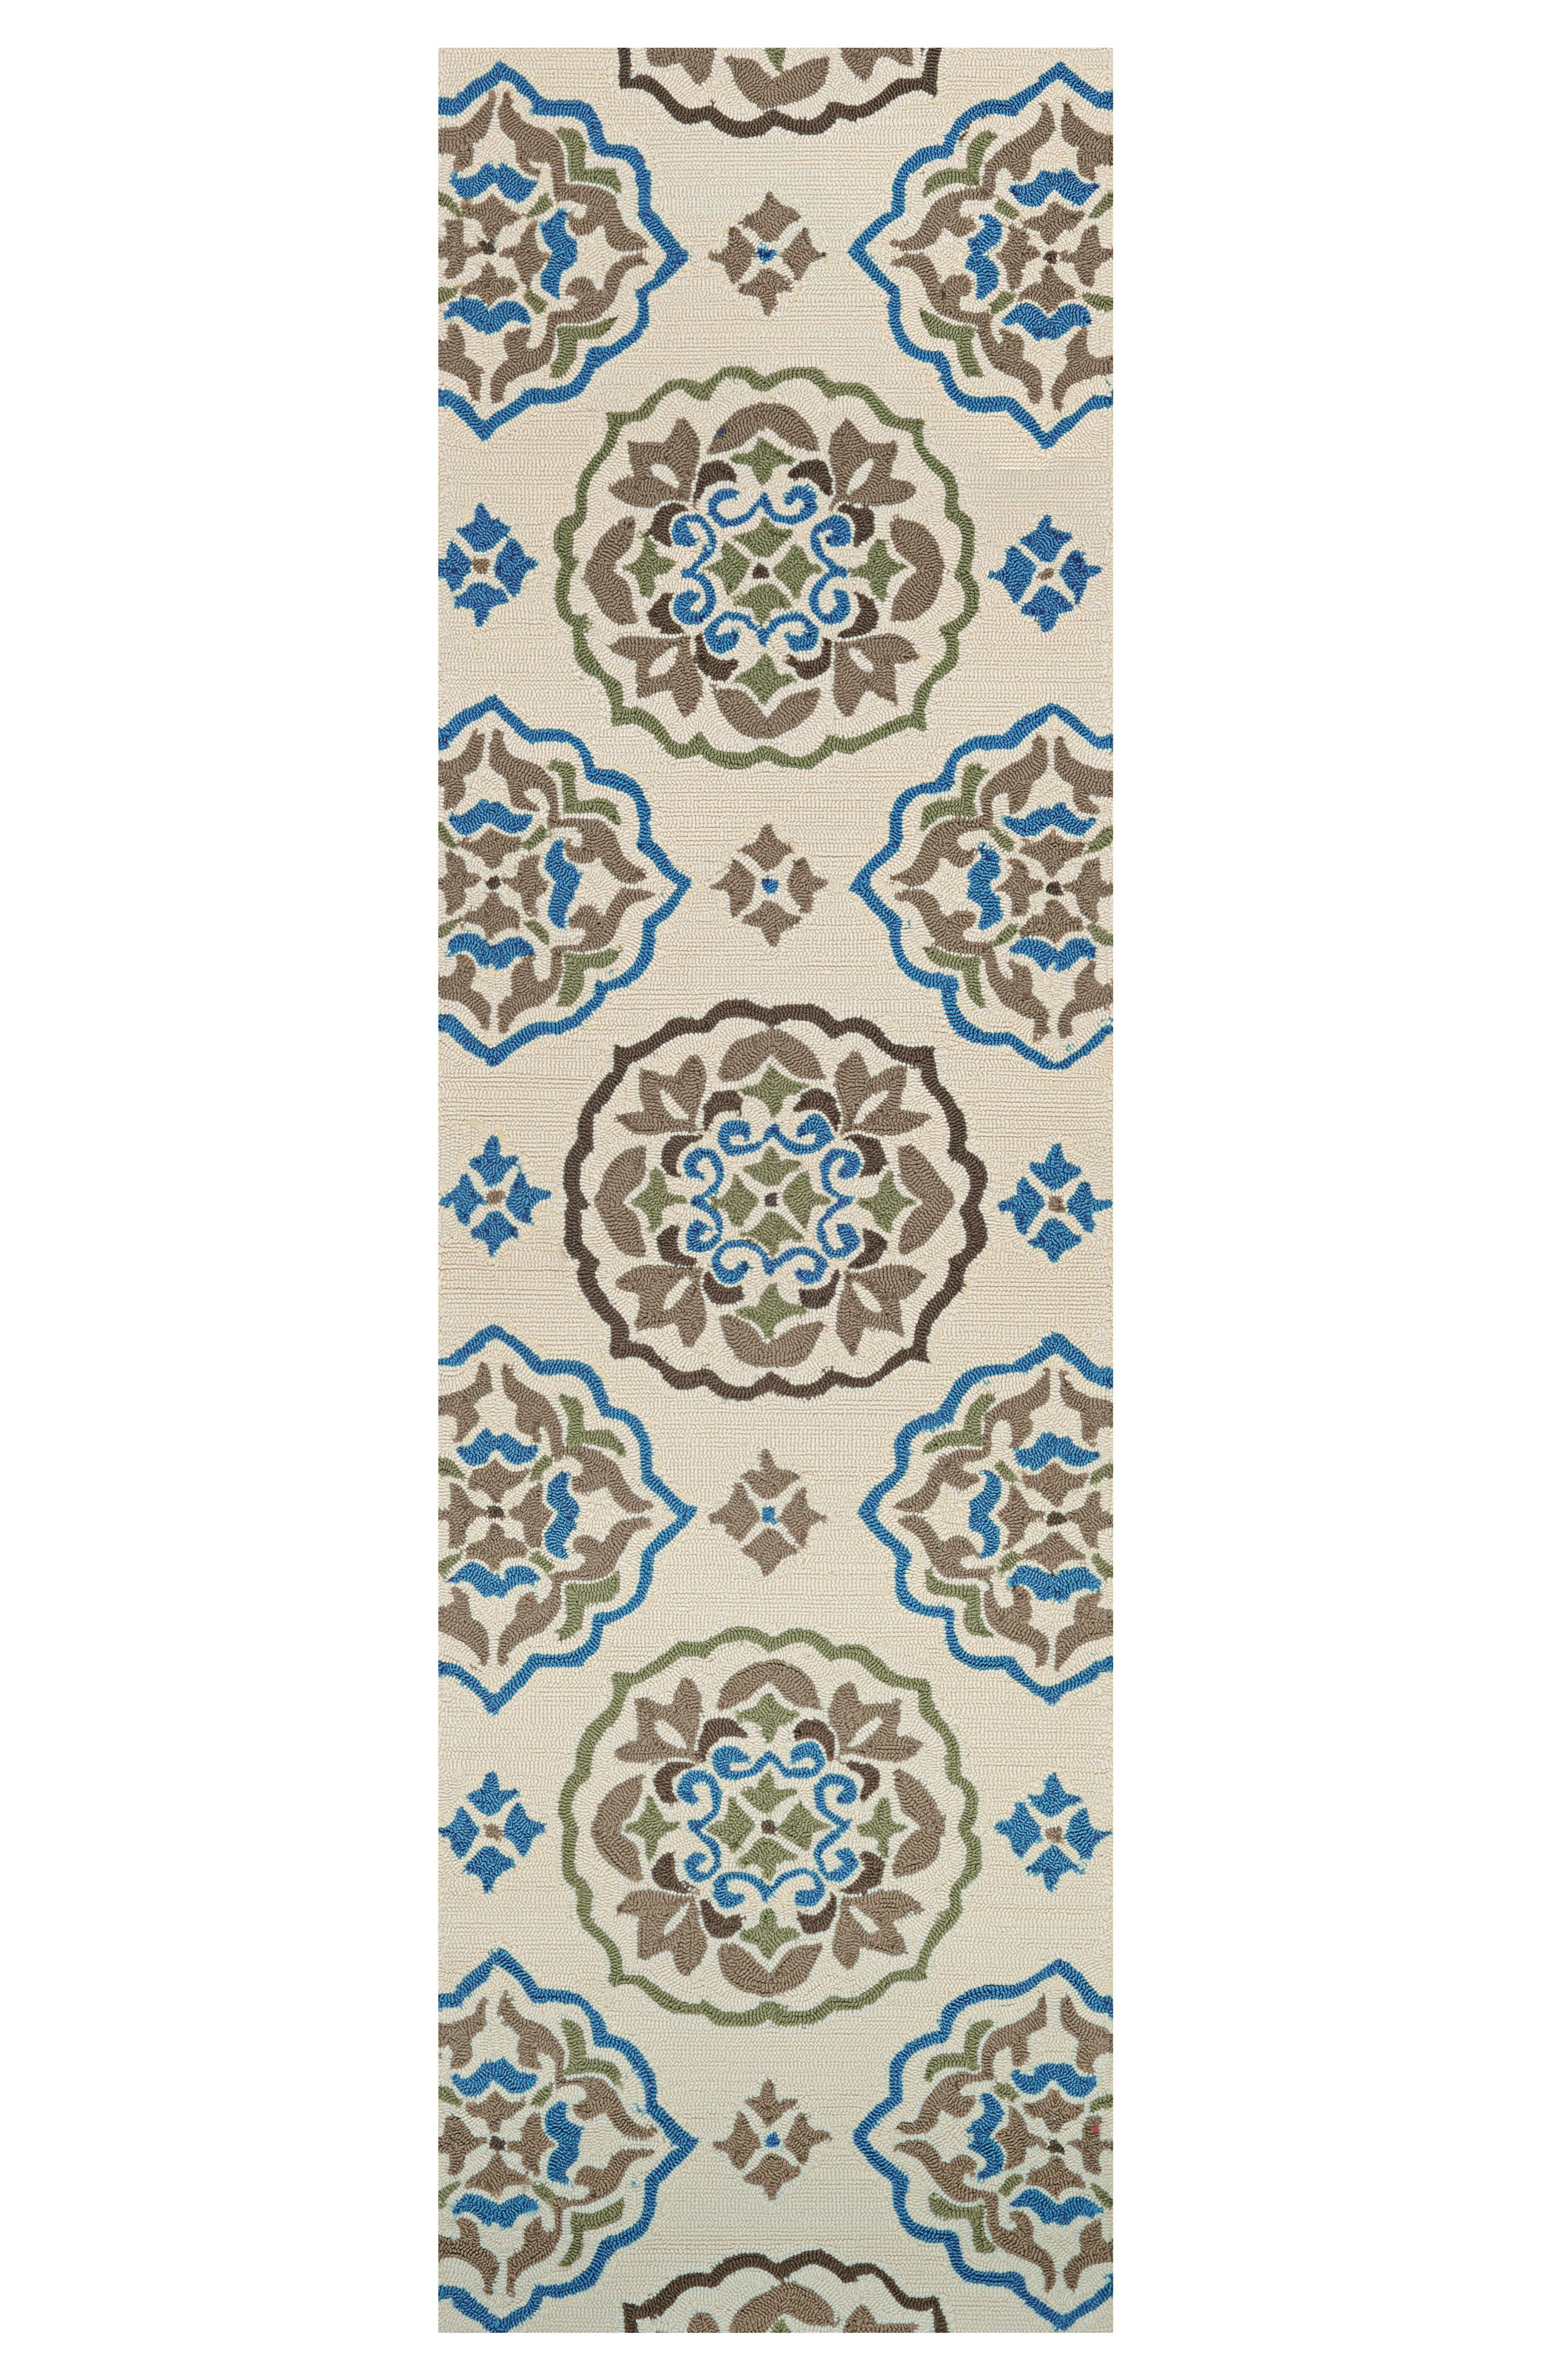 San Clemente Indoor/Outdoor Rug,                             Alternate thumbnail 3, color,                             400